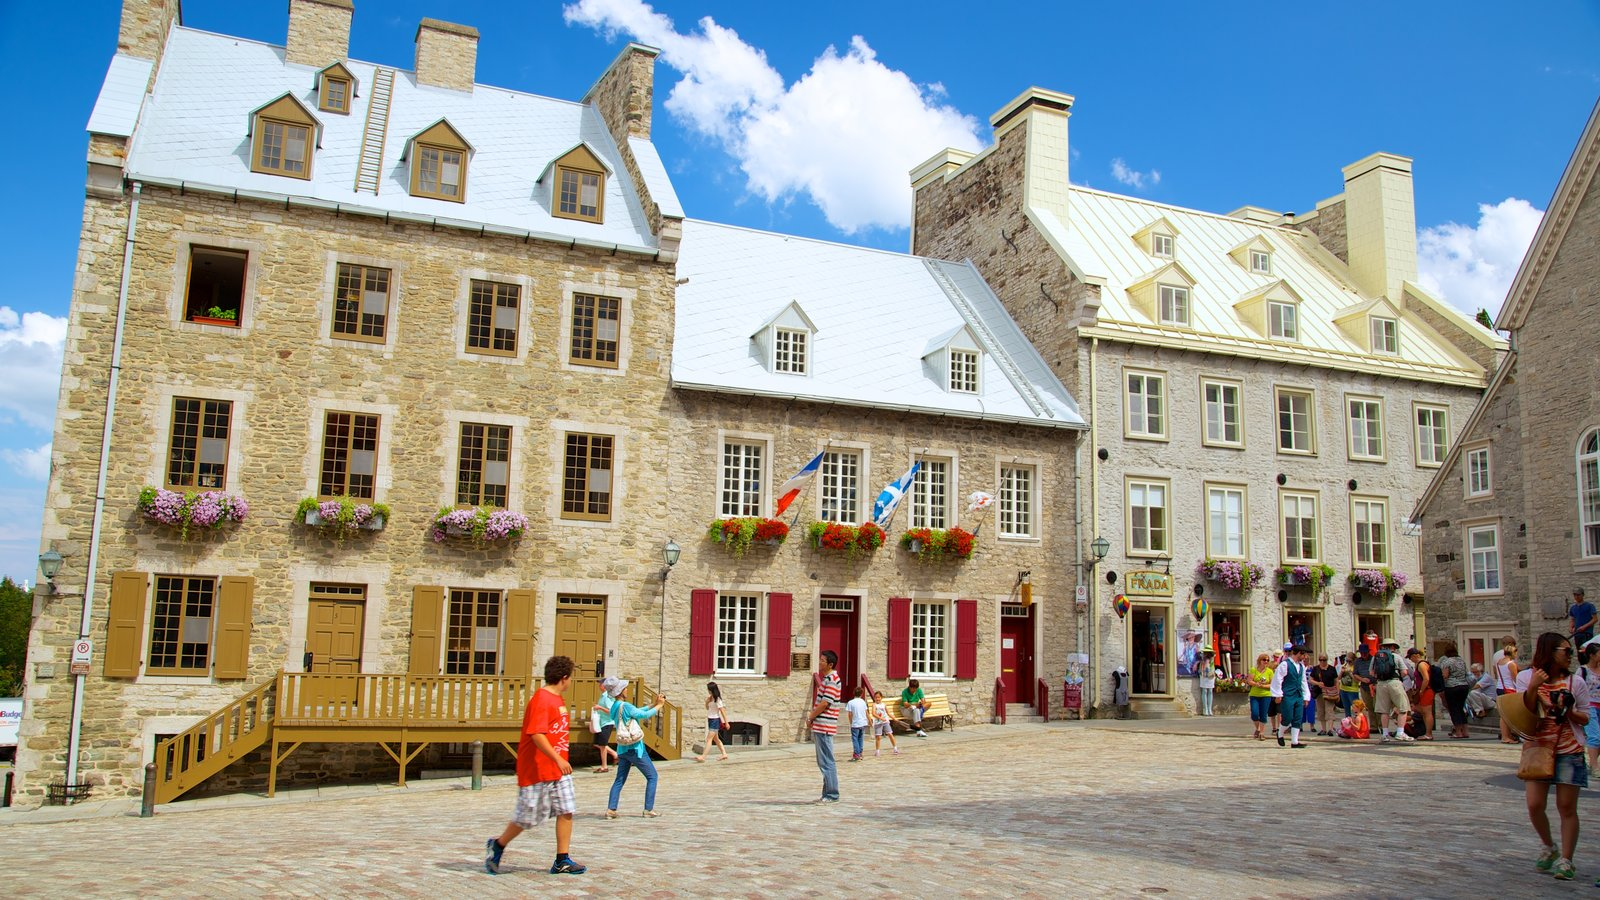 Place Royale showing a castle, heritage architecture and street scenes